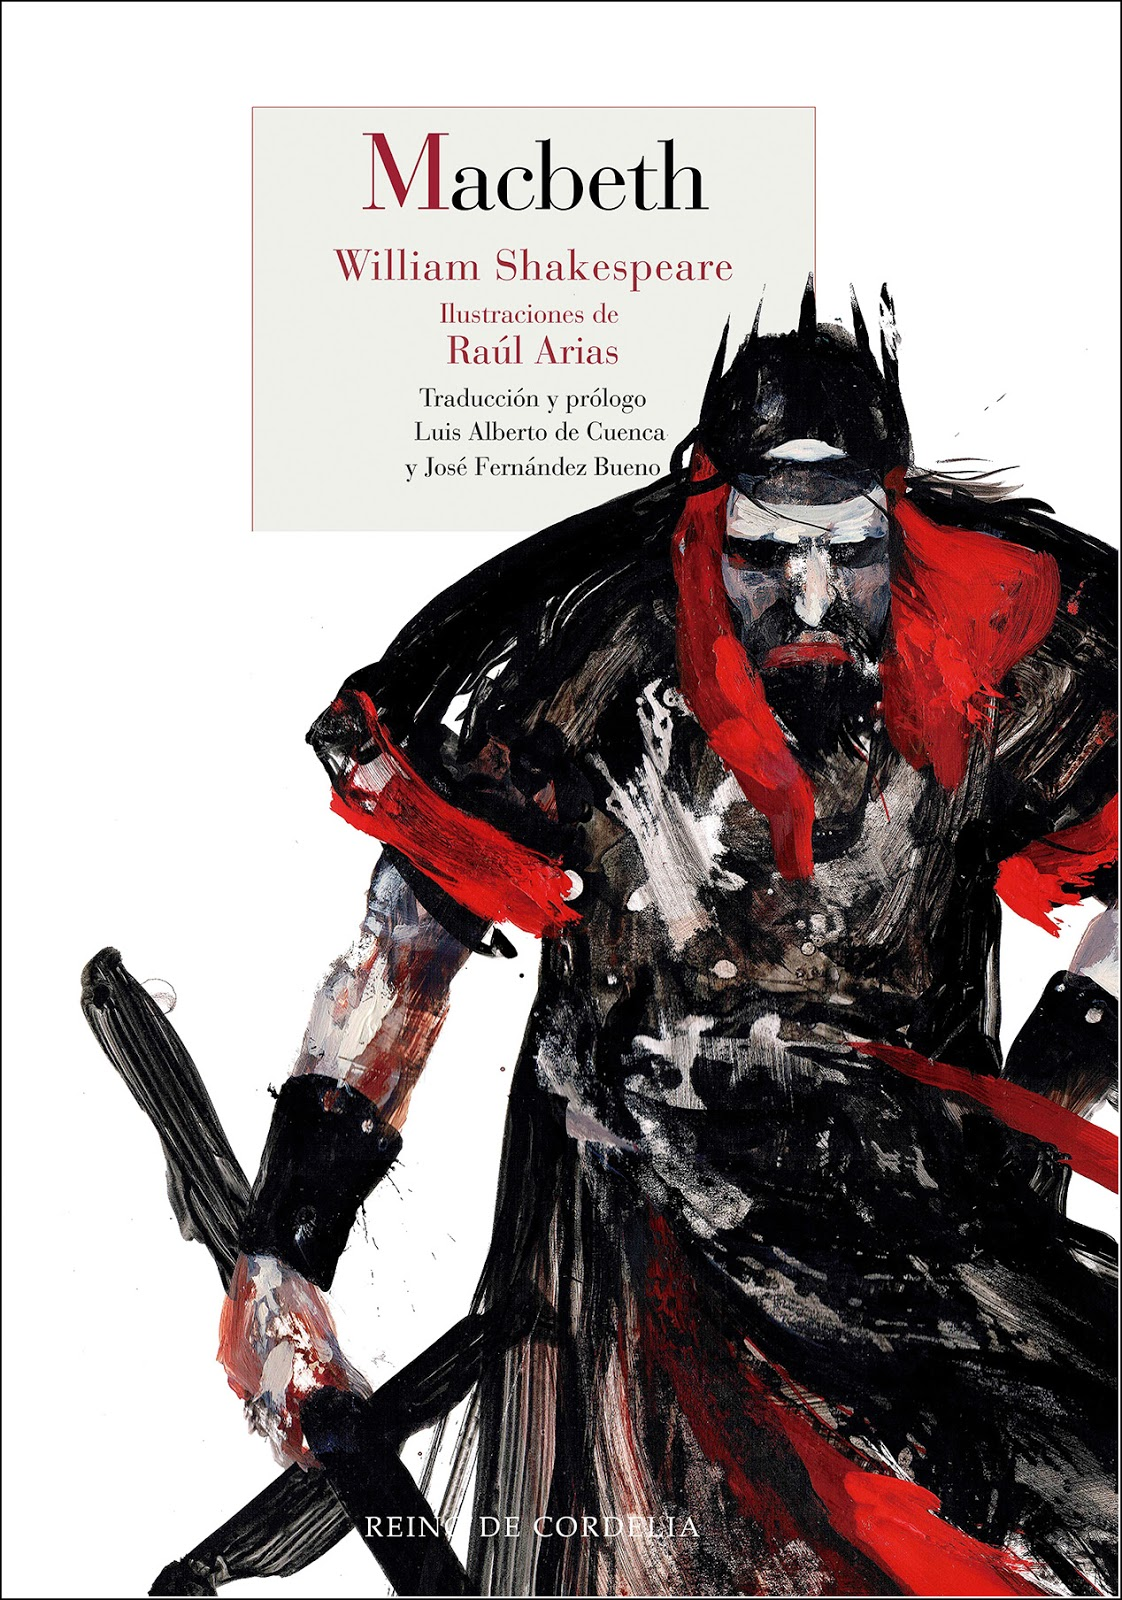 an analysis of macbeth as the butcher in macbeth by william shakespeare